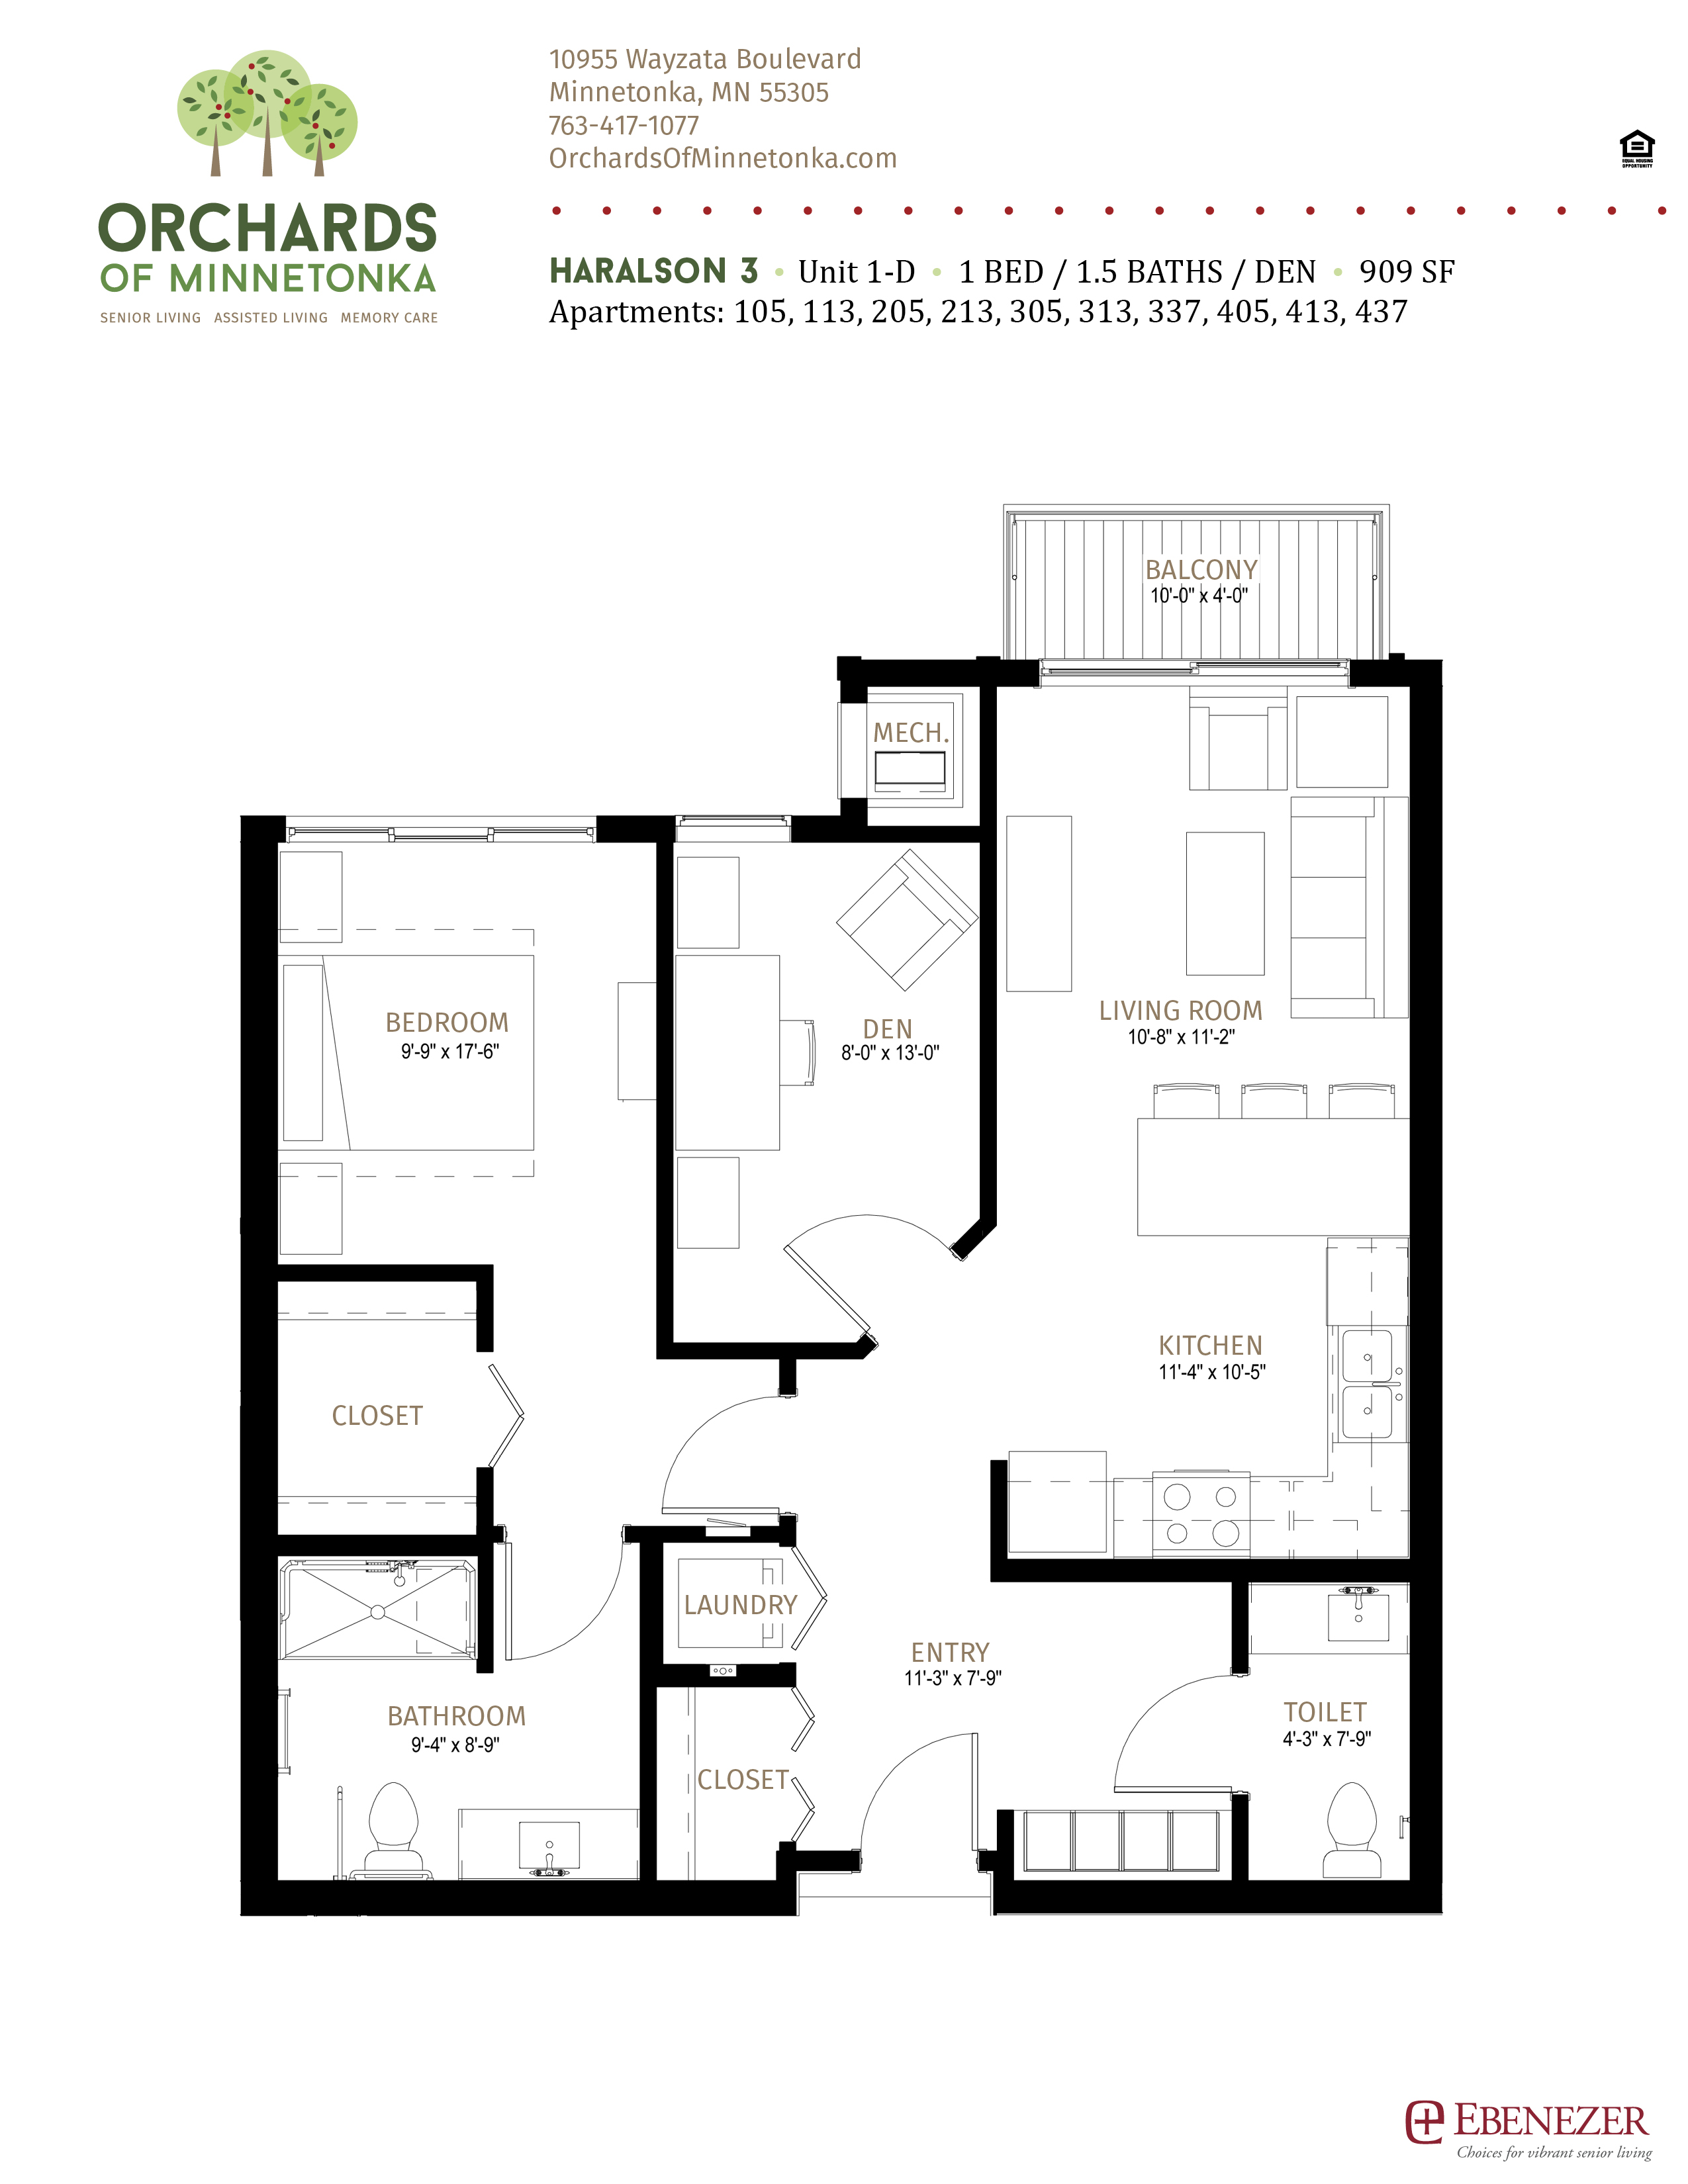 Orchards of Minnetonka - Haralson - Senior Living Unit 1 - D